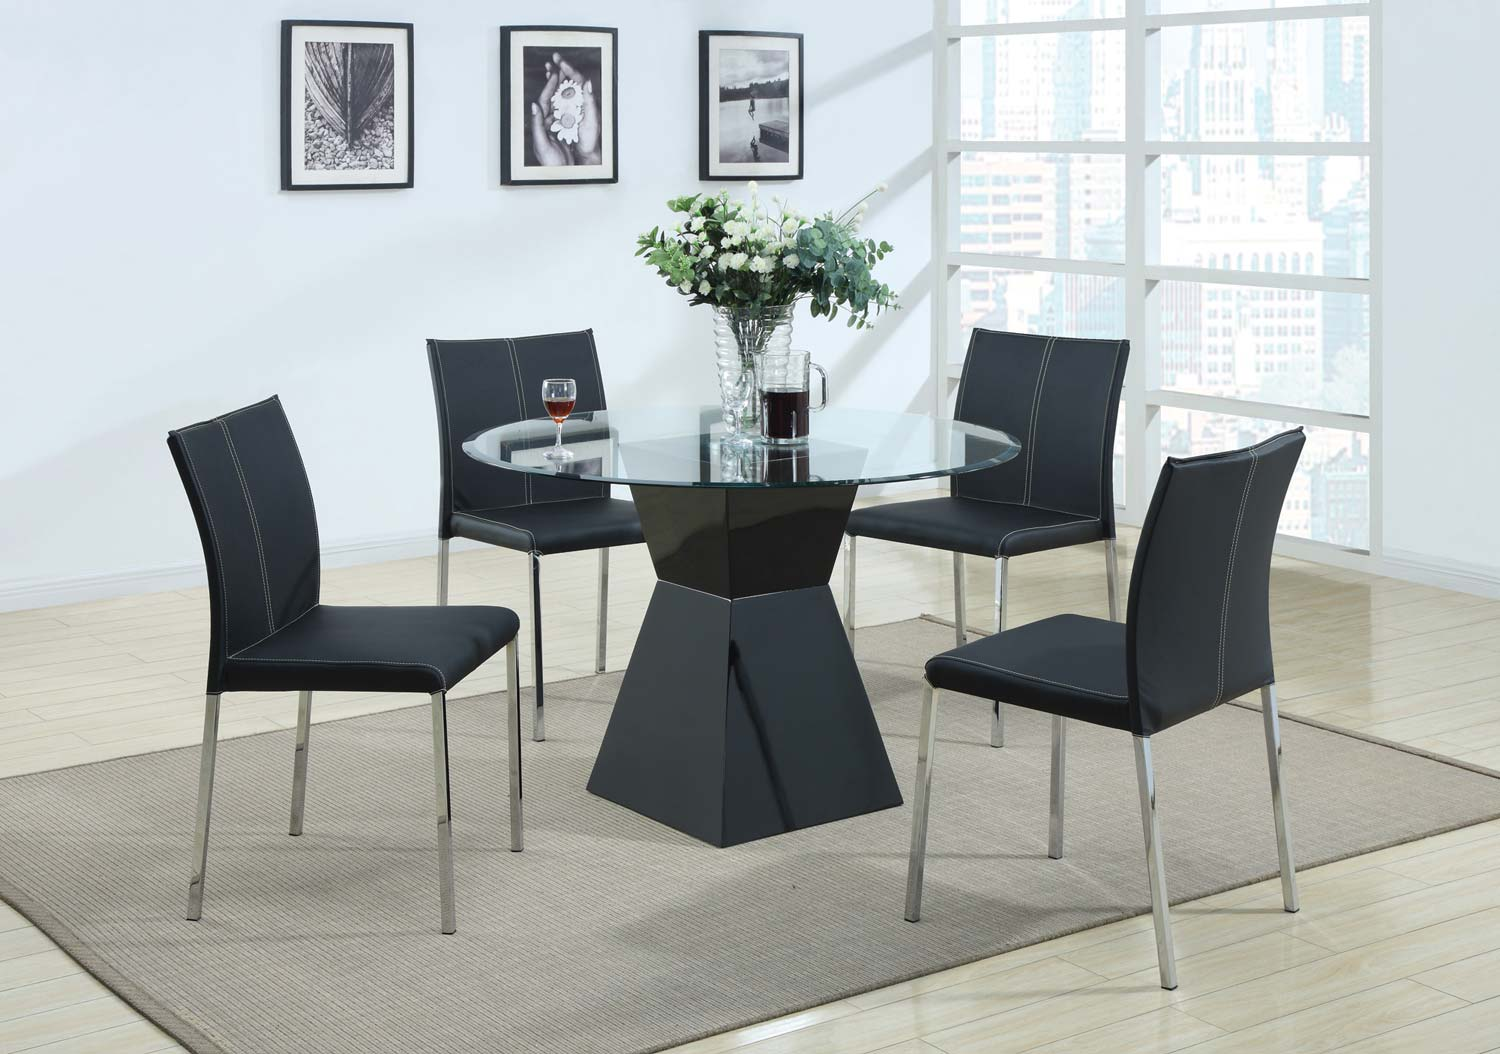 Coaster 103731 Round Glass Dining Set - Black Chair